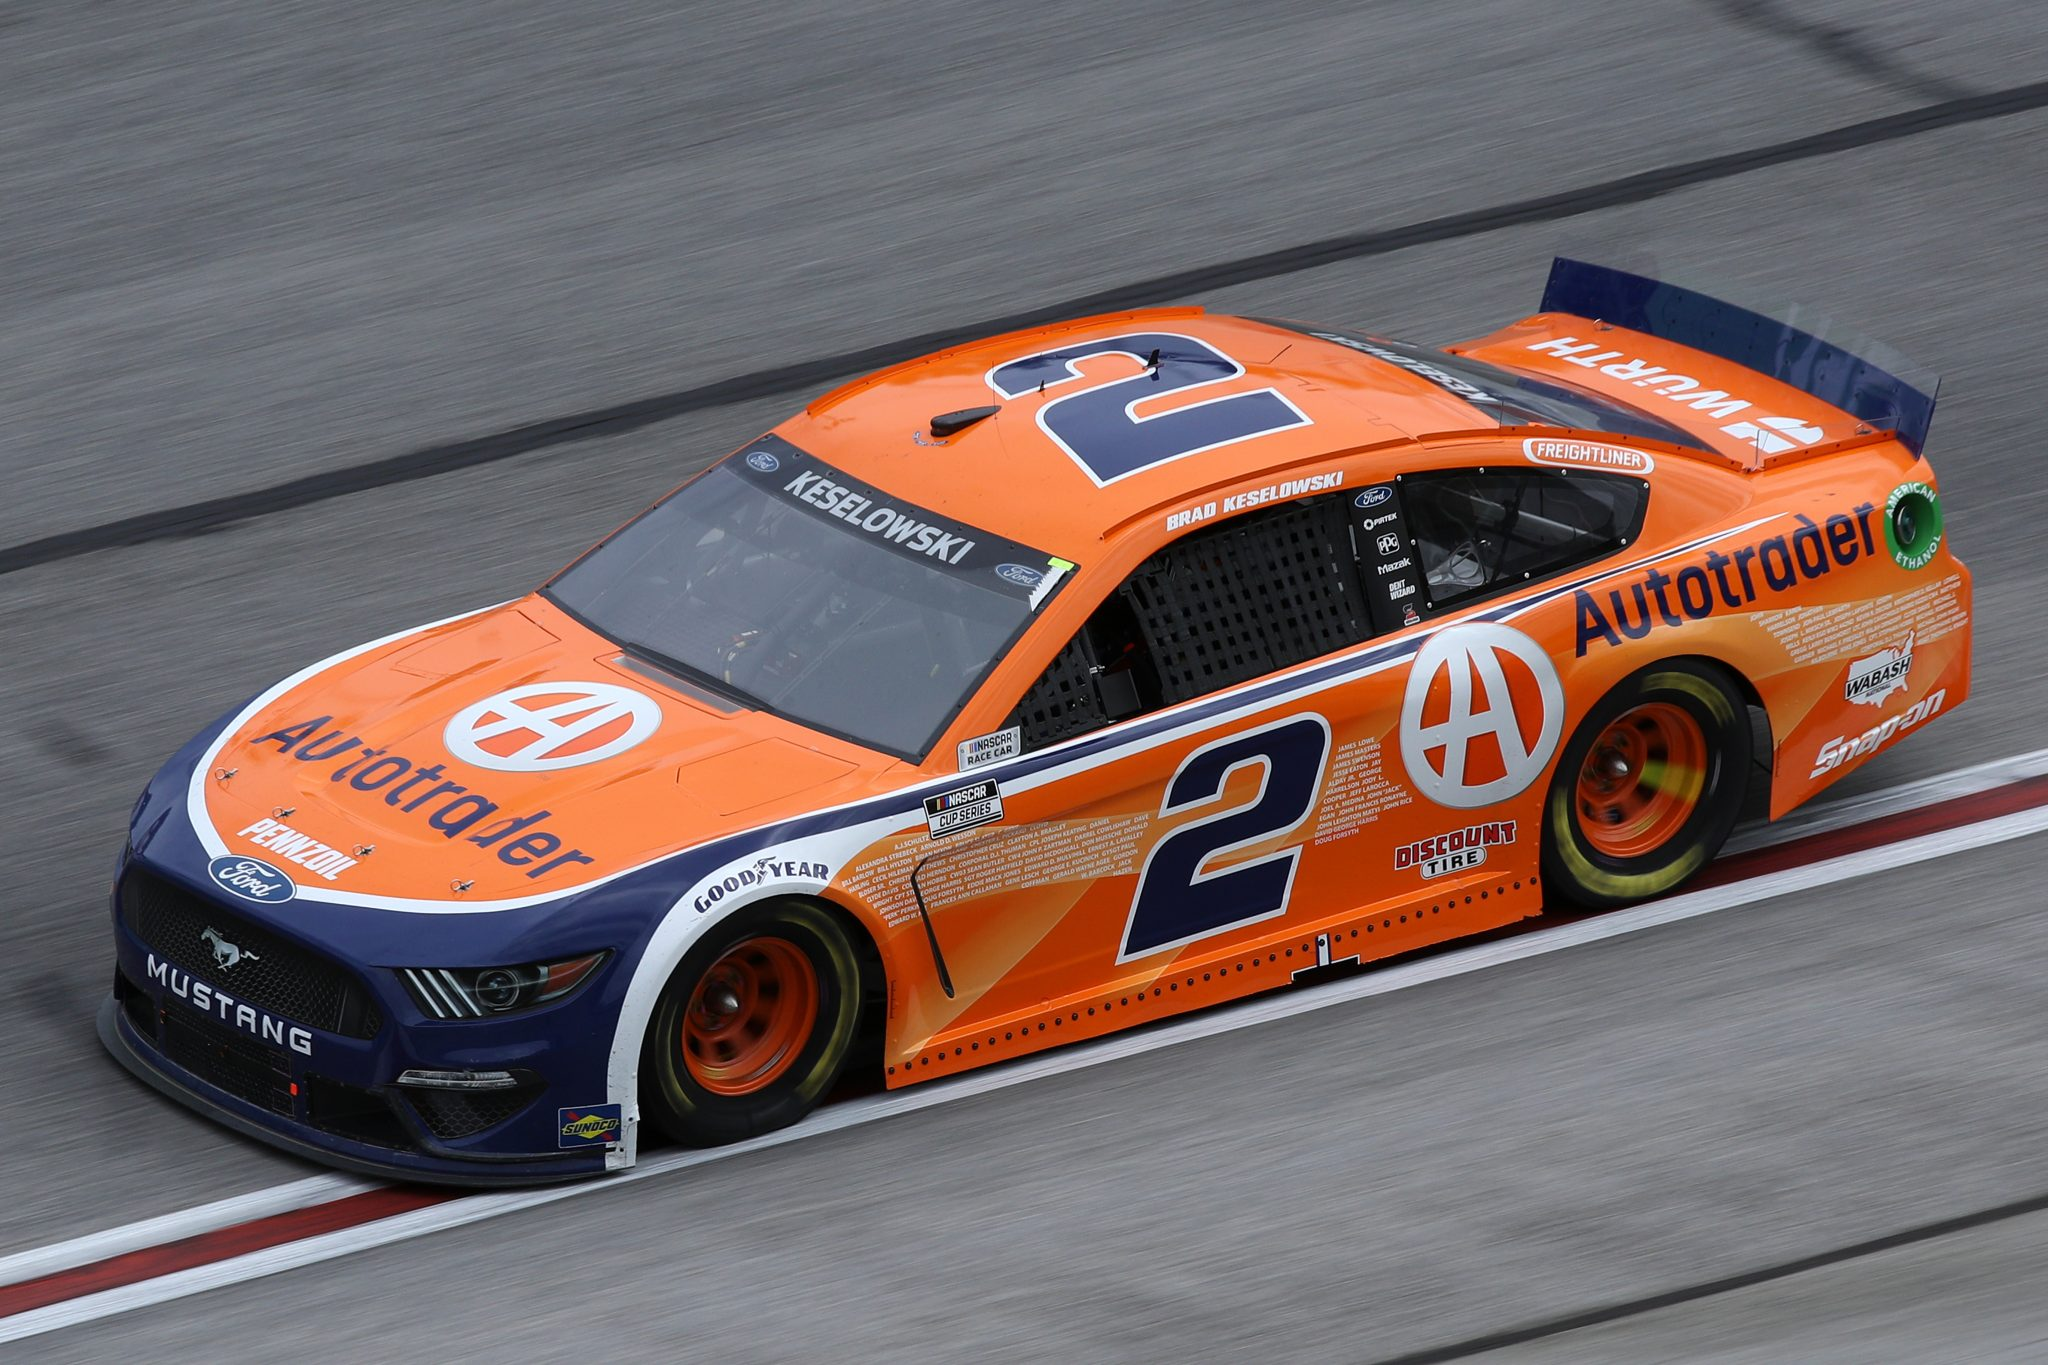 HAMPTON, GEORGIA - MARCH 21: Brad Keselowski, driver of the #2 Autotrader Ford, drives during the NASCAR Cup Series Folds of Honor QuikTrip 500 at Atlanta Motor Speedway on March 21, 2021 in Hampton, Georgia. (Photo by Sean Gardner/Getty Images) | Getty Images